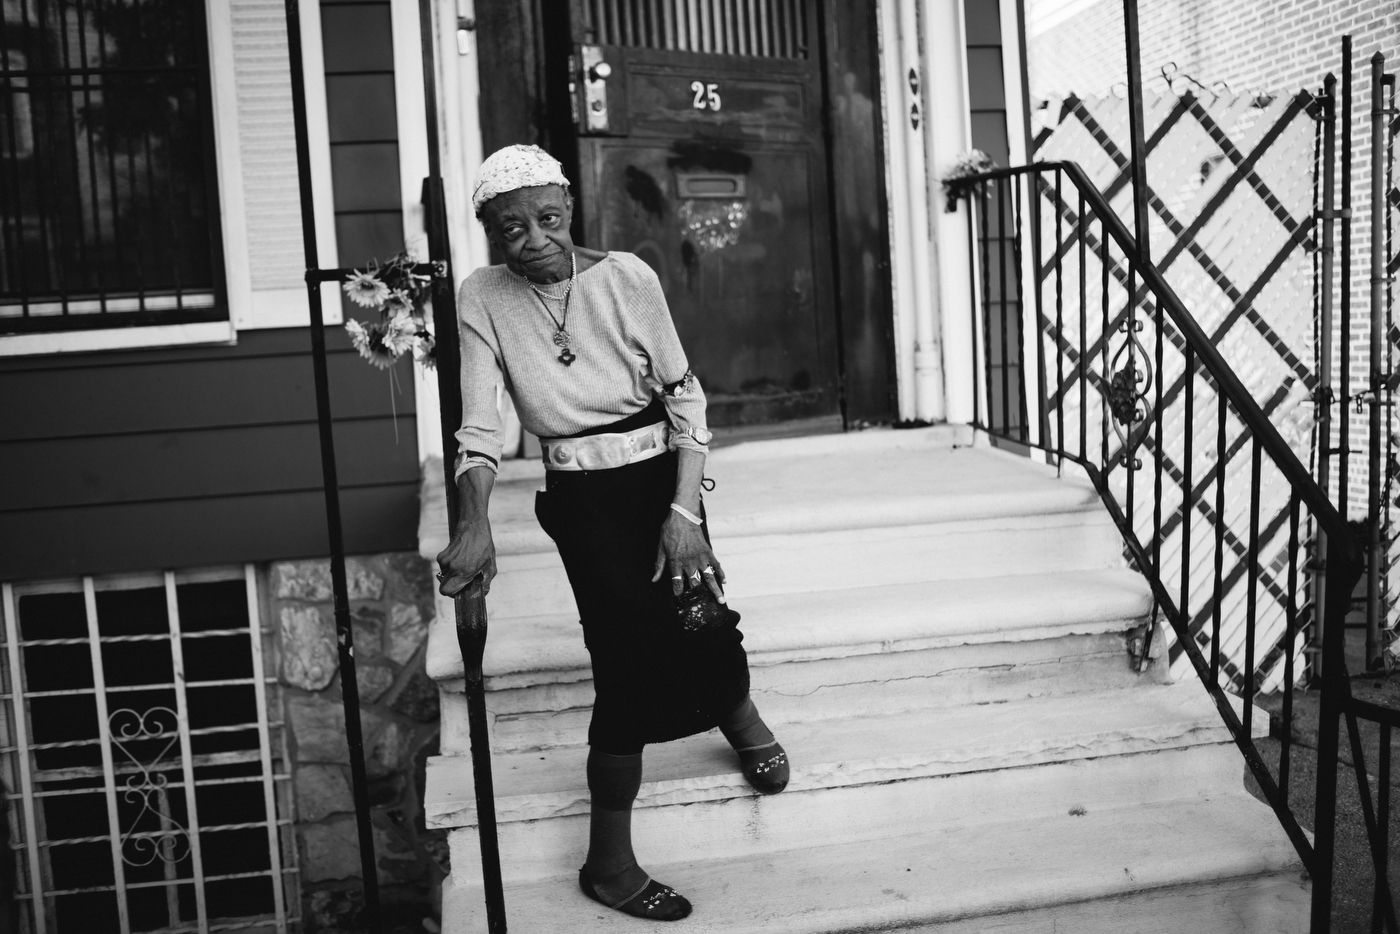 "Luzanna ""Miss Lucie"" Campbell, 90, has lived on Kossoth Place in Bushwick since she was 18 and has watched the neighborhood change. Now, all the German immigrants have moved away. After attending five different universities and trade school, Miss Lucie speaks (or tries) Spanish to many of the Puerto Ricans who pass her door."